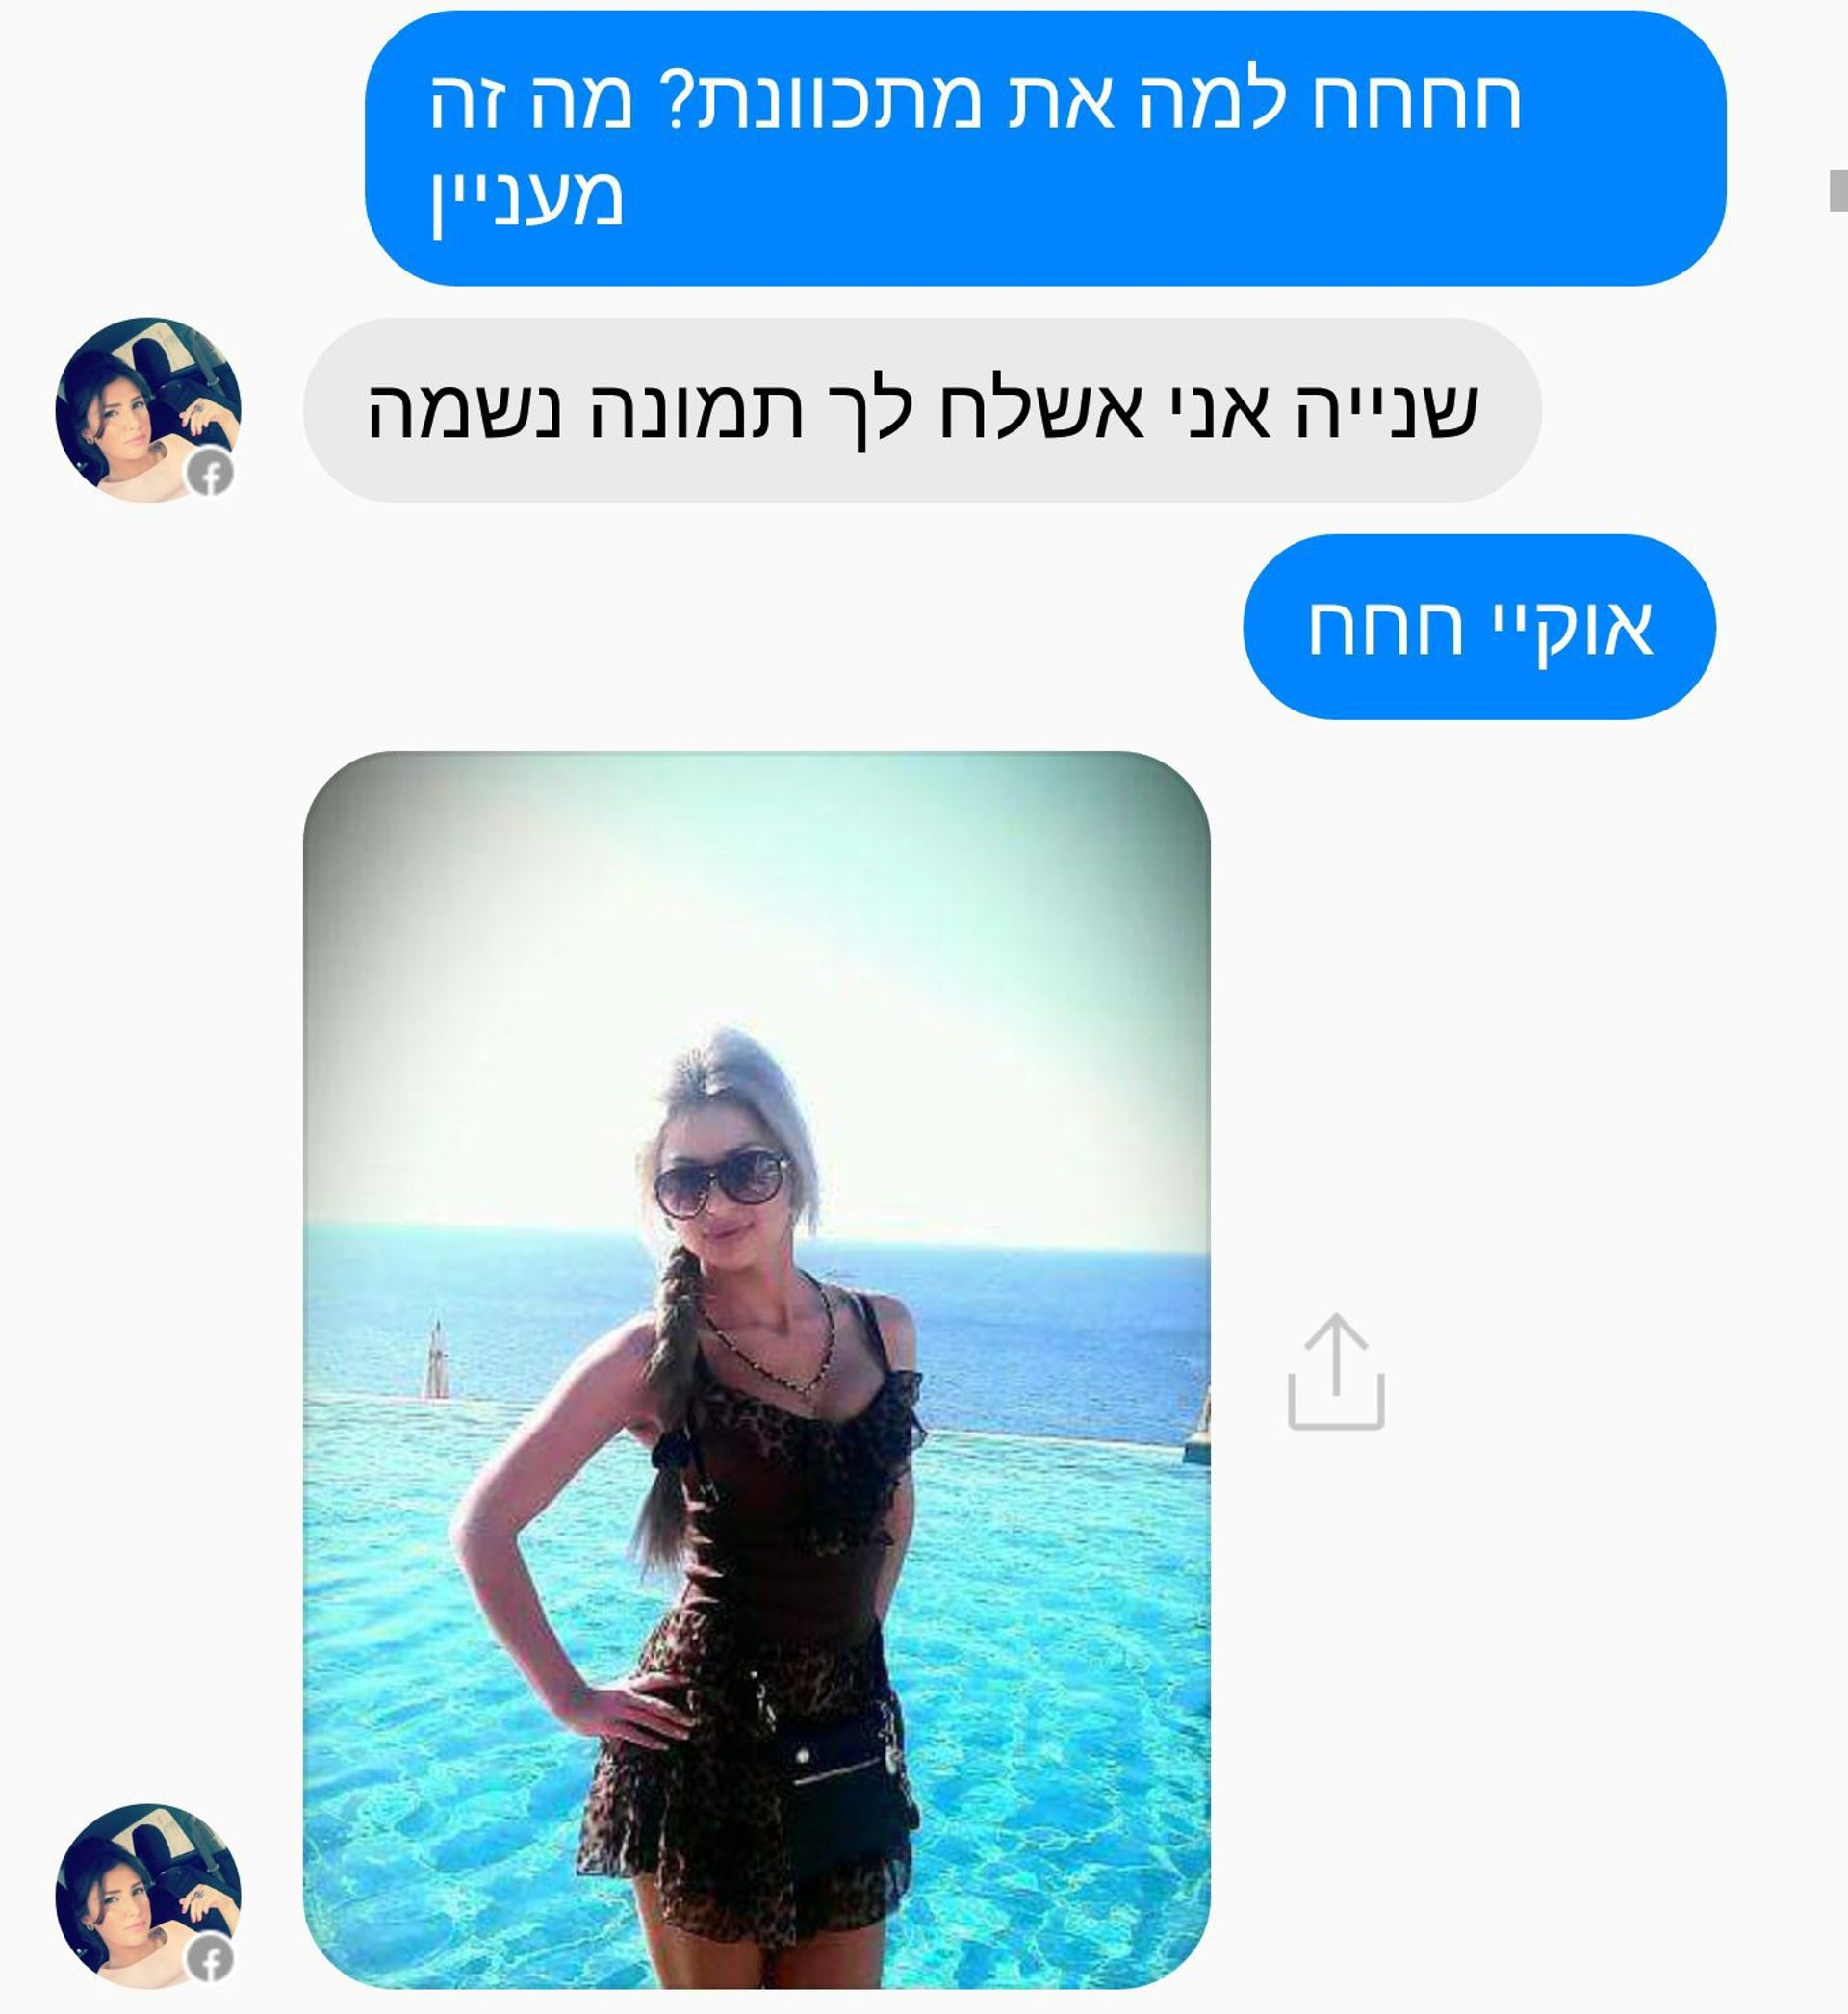 One of the fake profiles operated by Hamas.